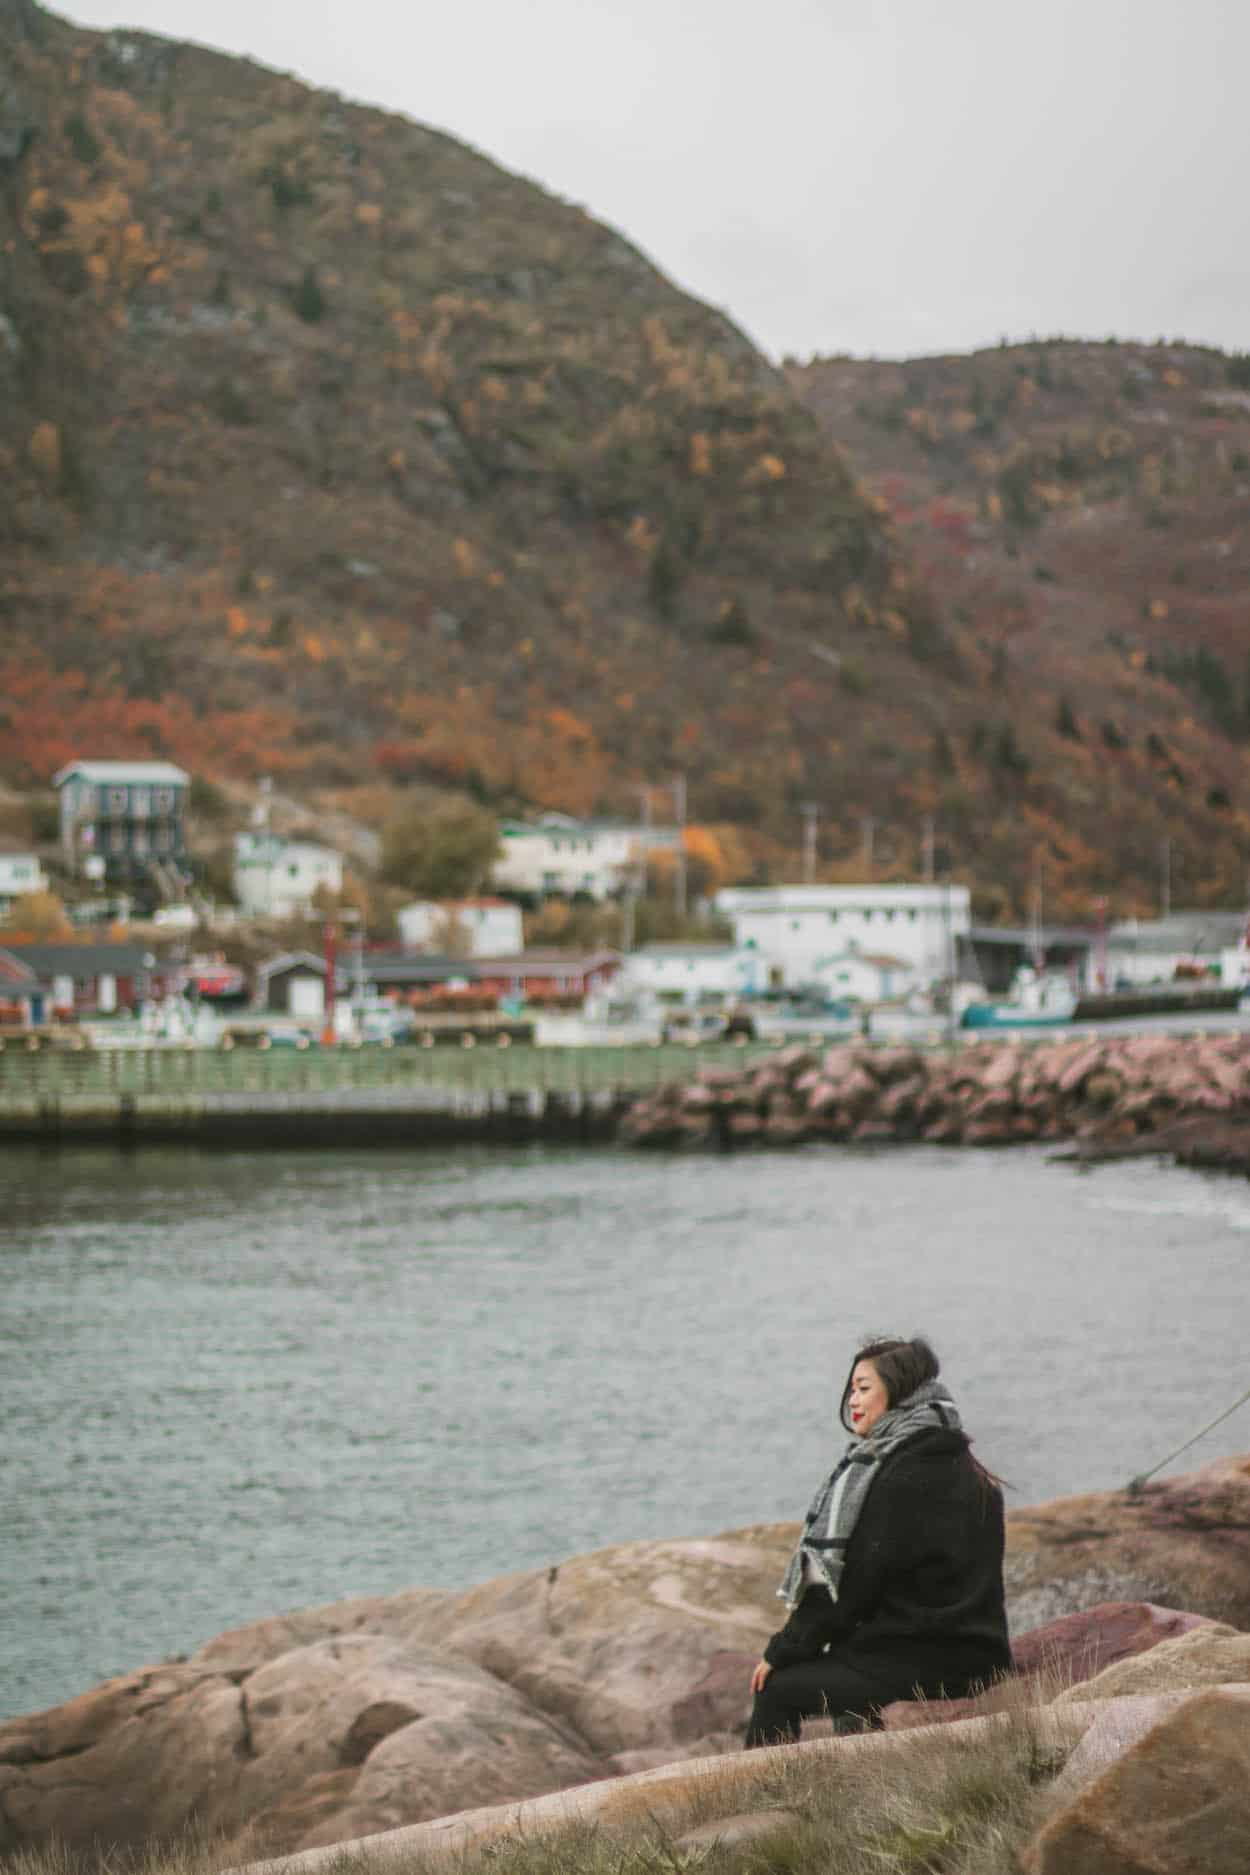 Petty Harbour Maddox Cove in St. John's, Newfoundland